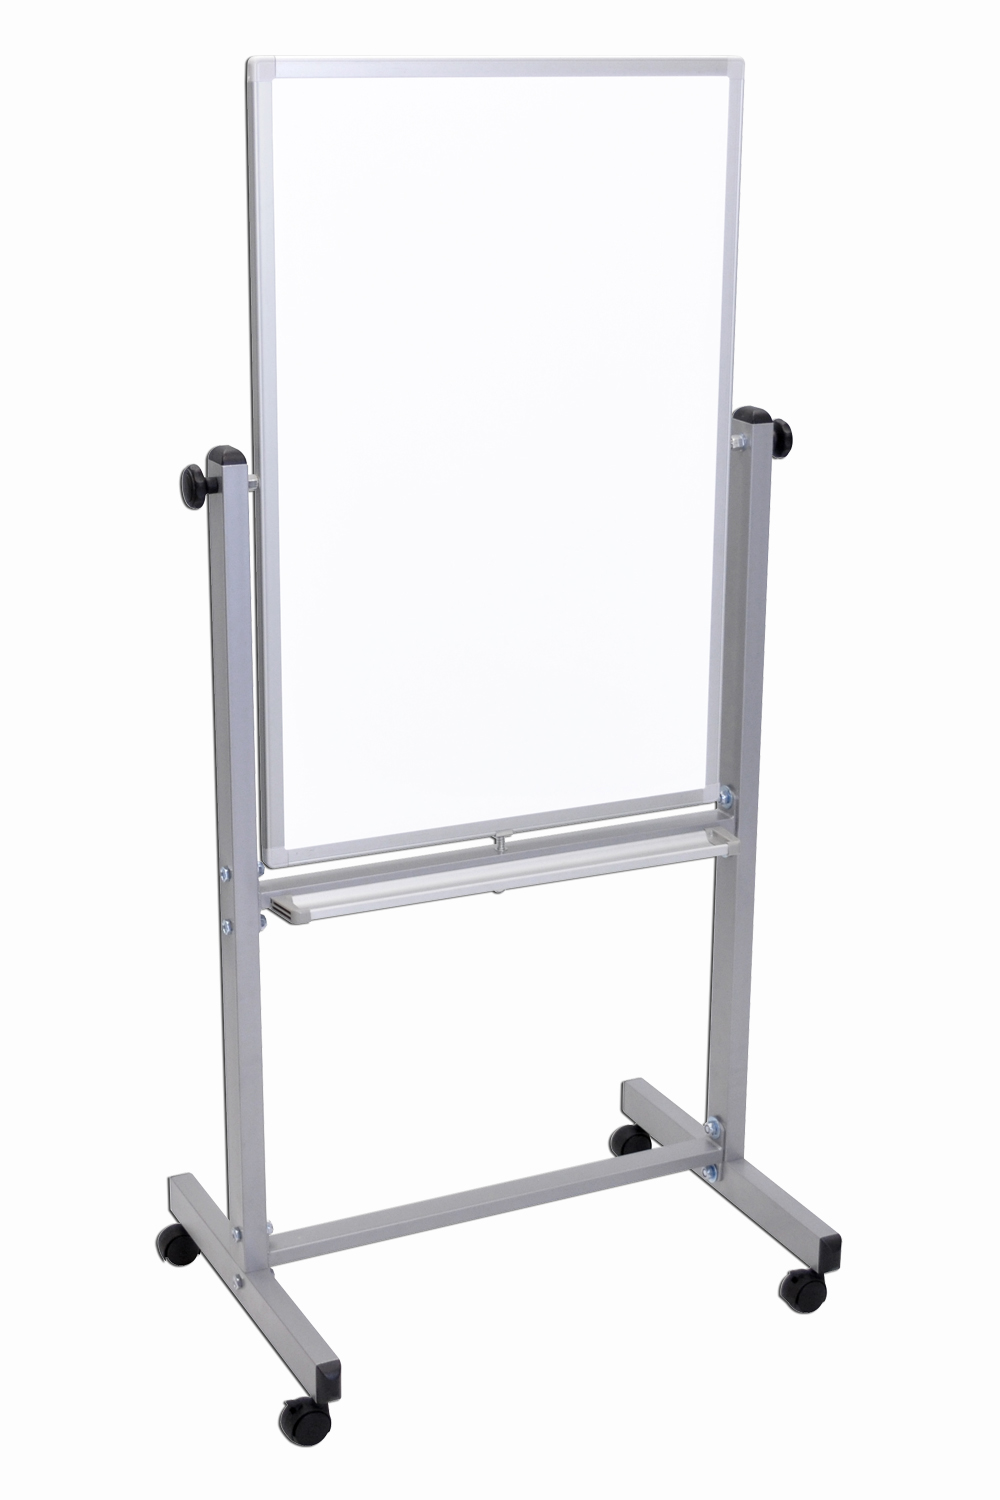 Offex L270-1PK Double Sided Portable Magnetic Whiteboard Presentation Easel 24